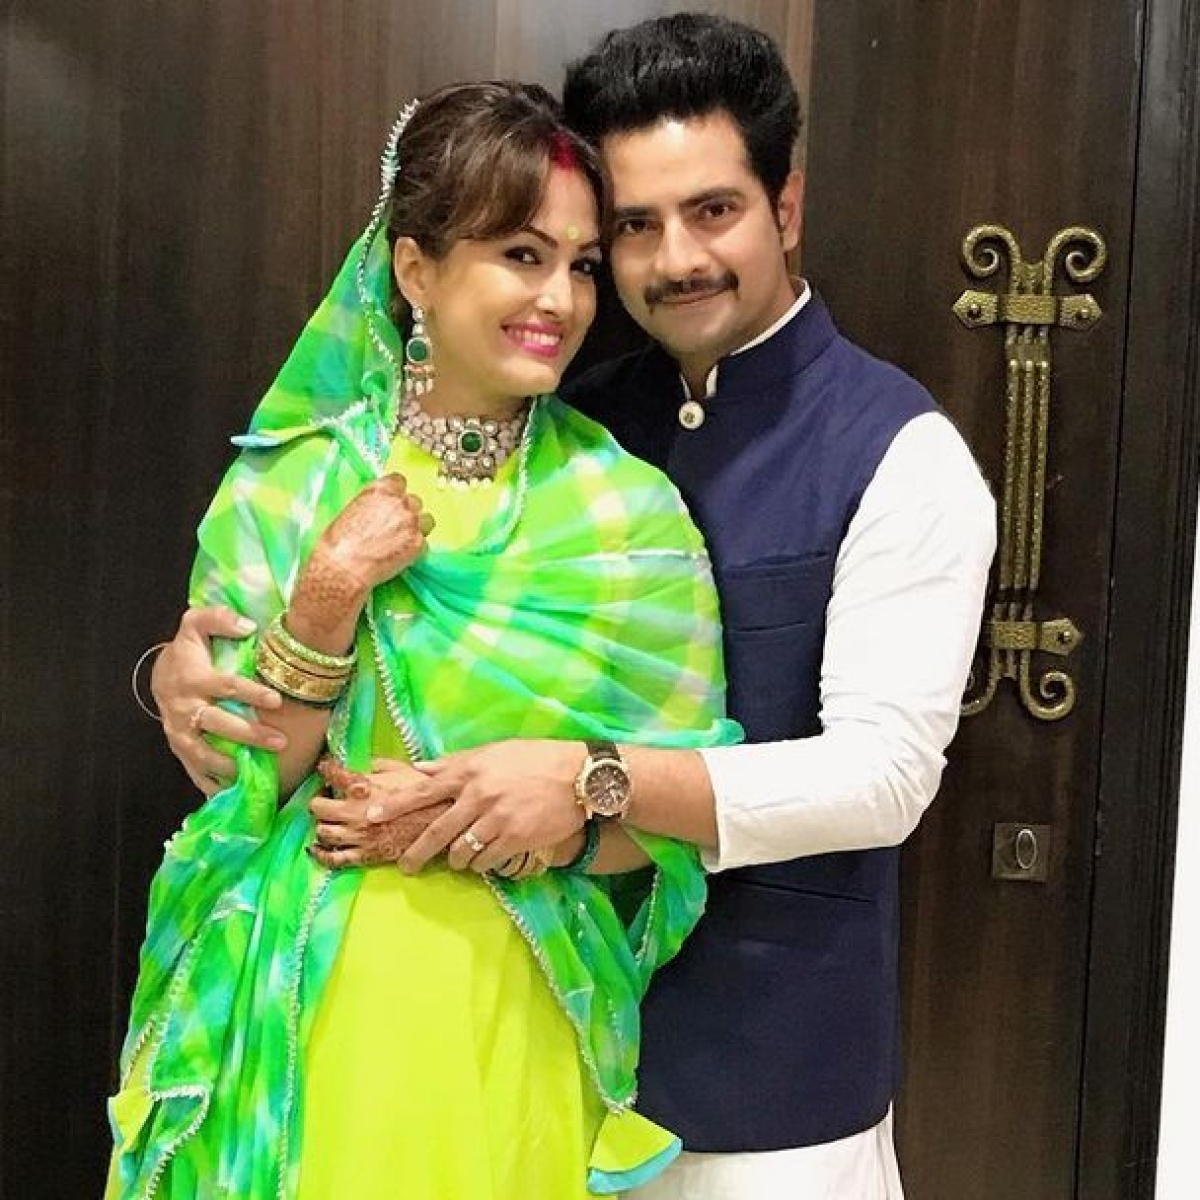 'Yeh Rishta Kya Kehlataa Hai' actor Karan Mehra and Nisha Rawal's marriage in trouble?